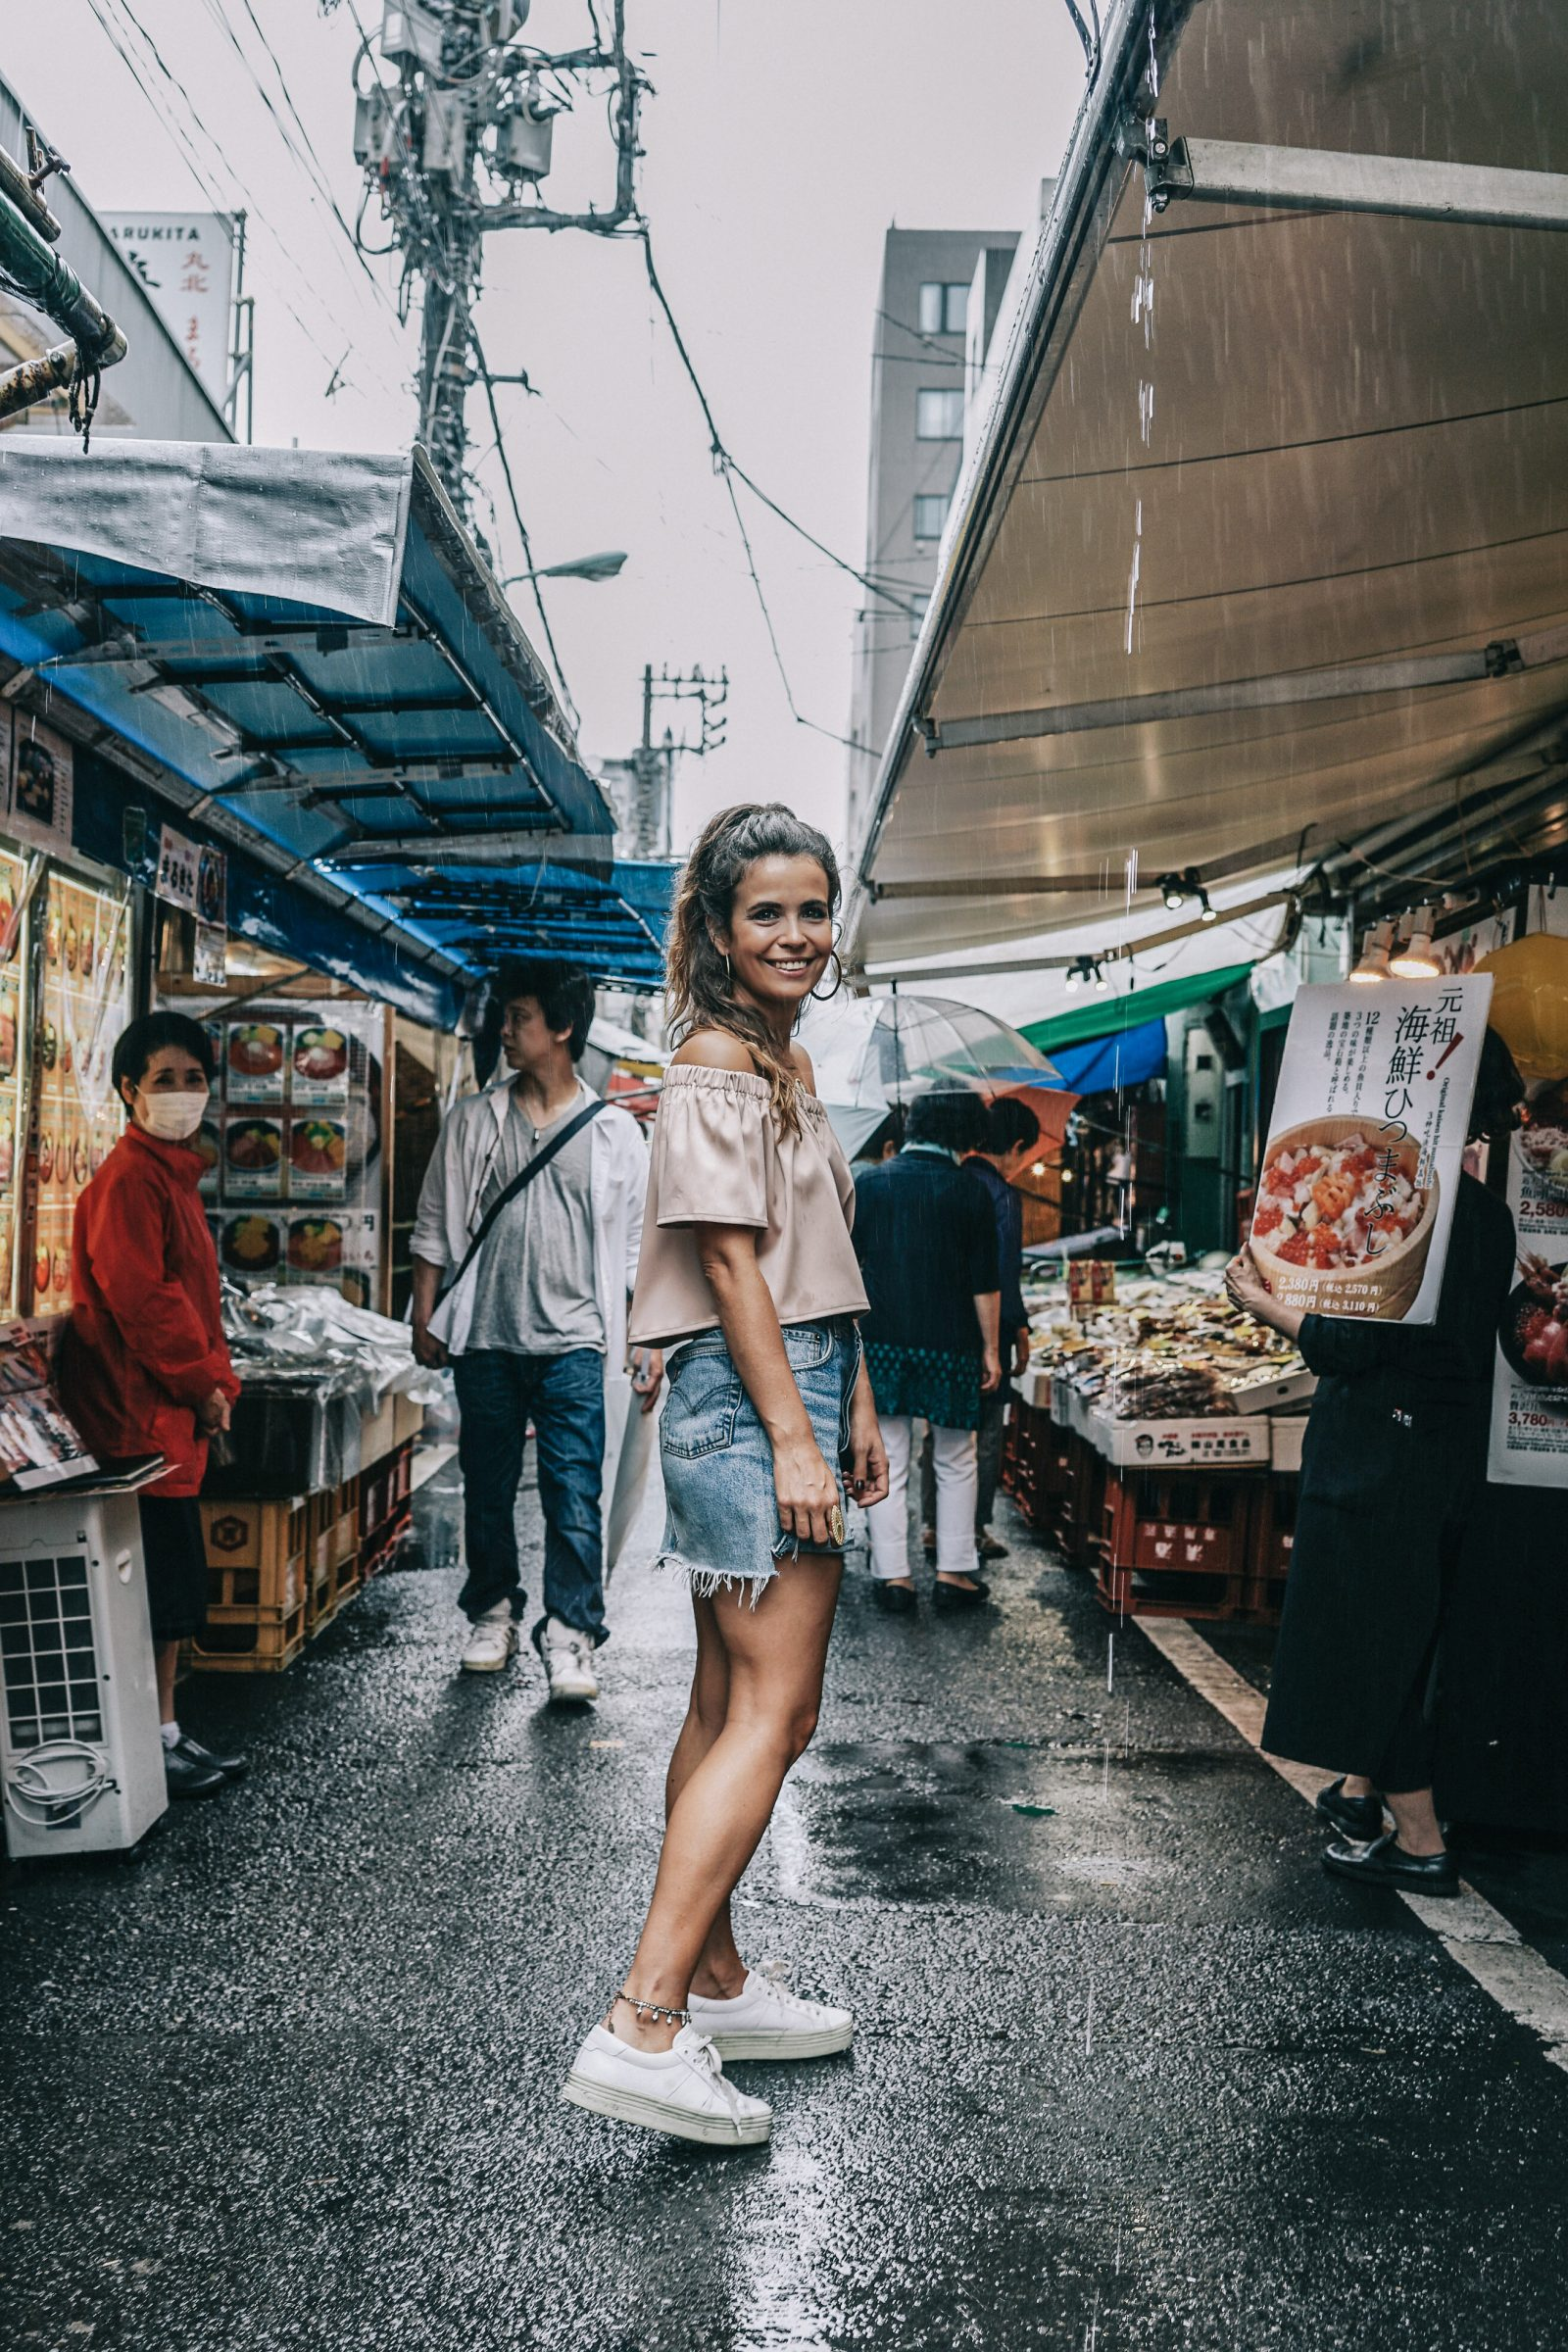 Tokyo_Travel_Guide-Fish_Market-Harajuku-Levis_Denim_Skirt-Off_The_Shoulders_Top-YSL_Sneakers-Outfit-Collage_Vintage-Street_Style-54